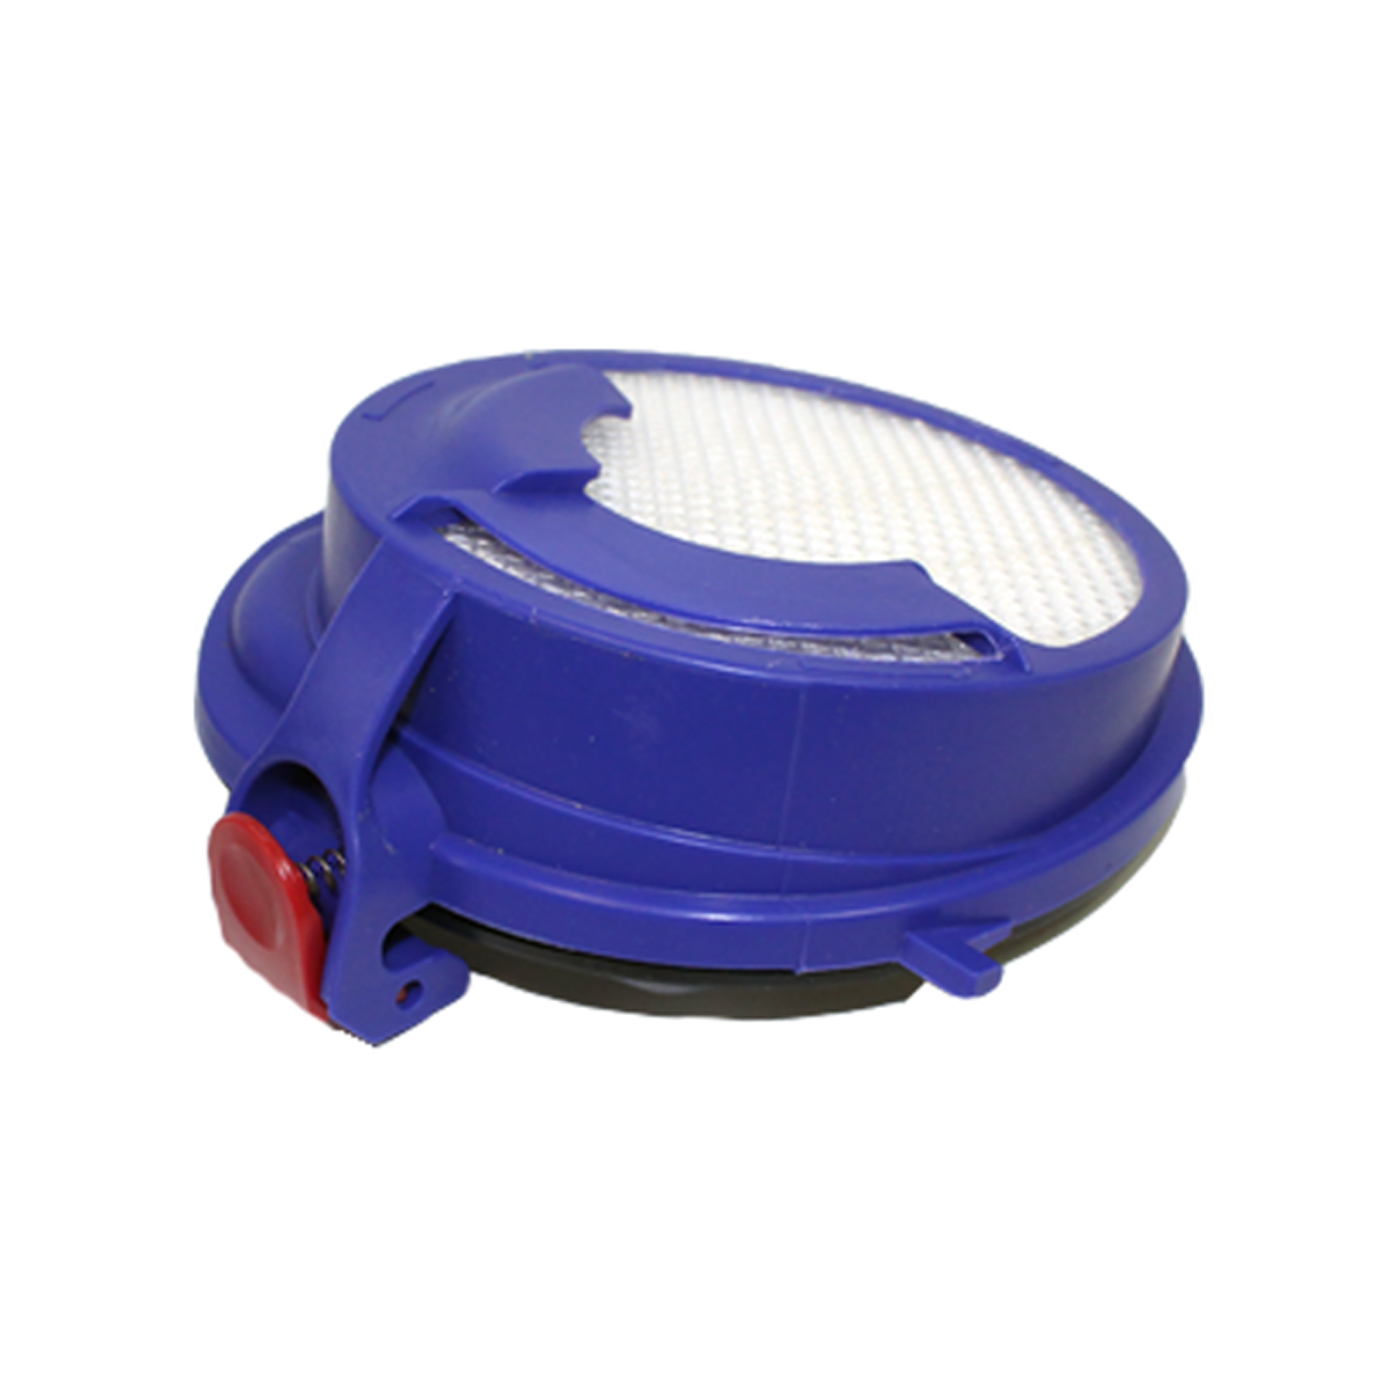 Dyson upright filters upc barcode for Dyson dc41 motor replacement